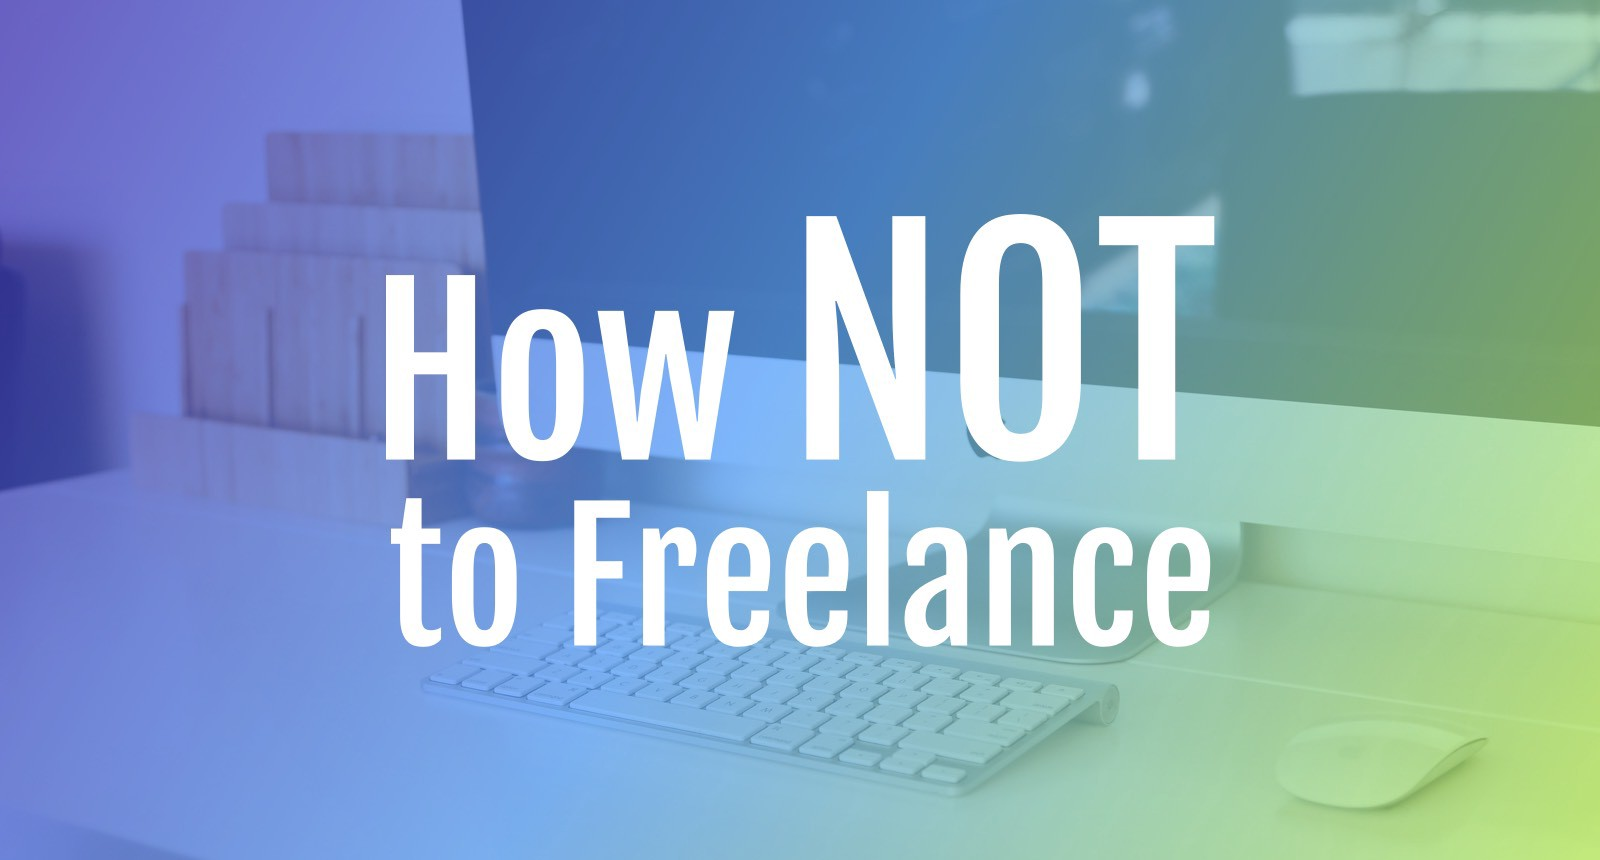 How NOT to Freelance